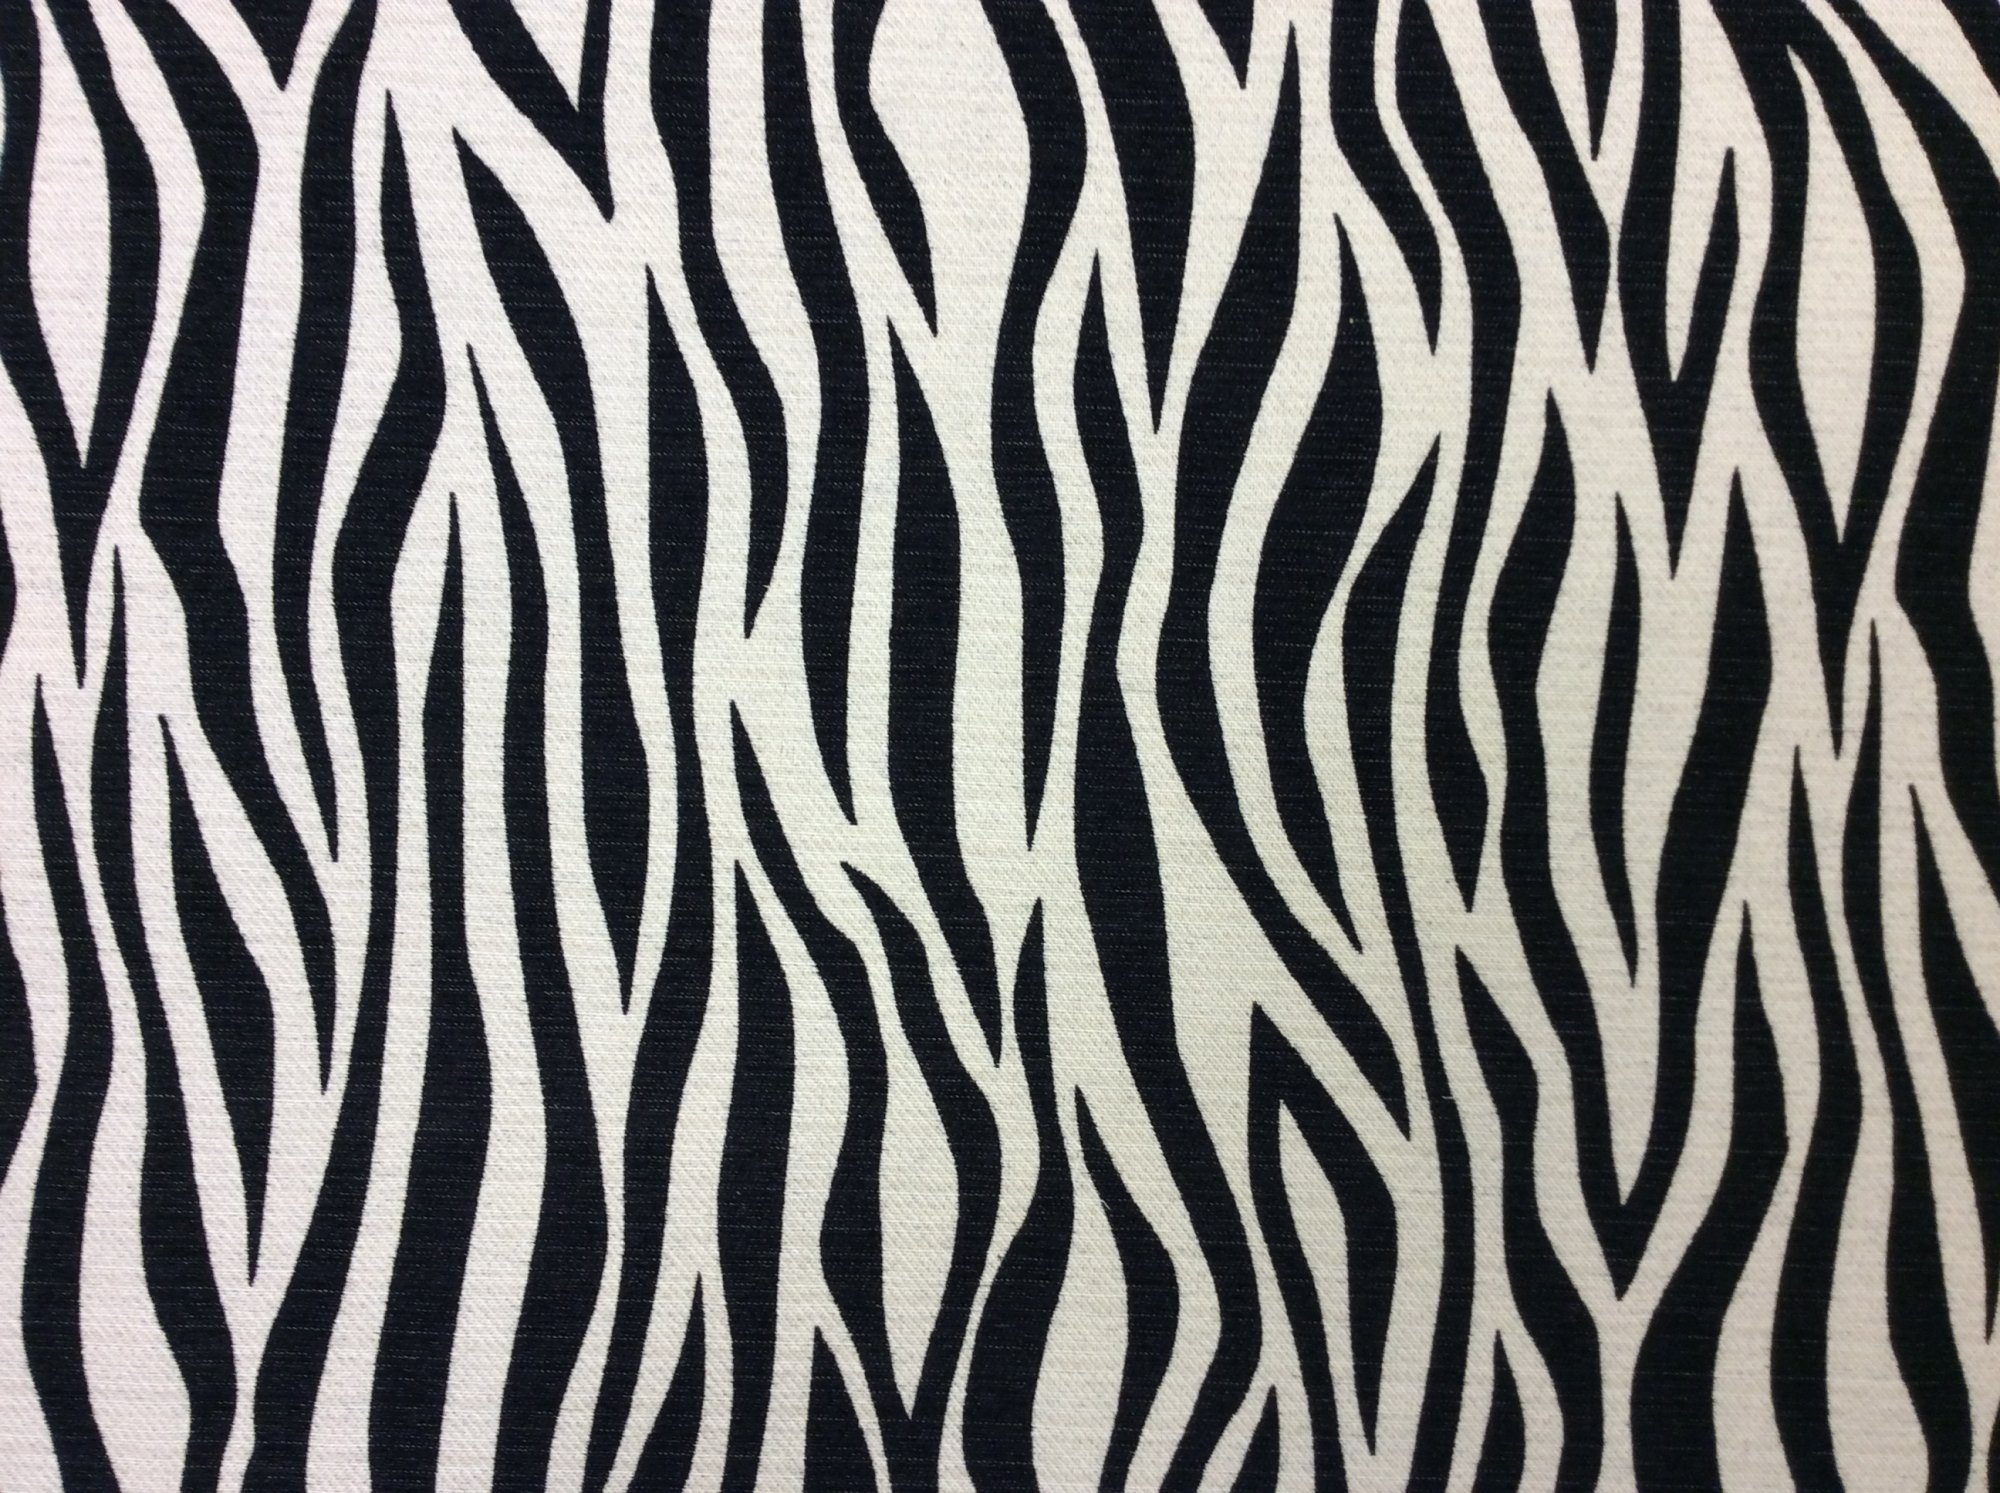 Heavy Upholstery Woven Zebra Wild Jungle Upholstery Fabric KNG1824